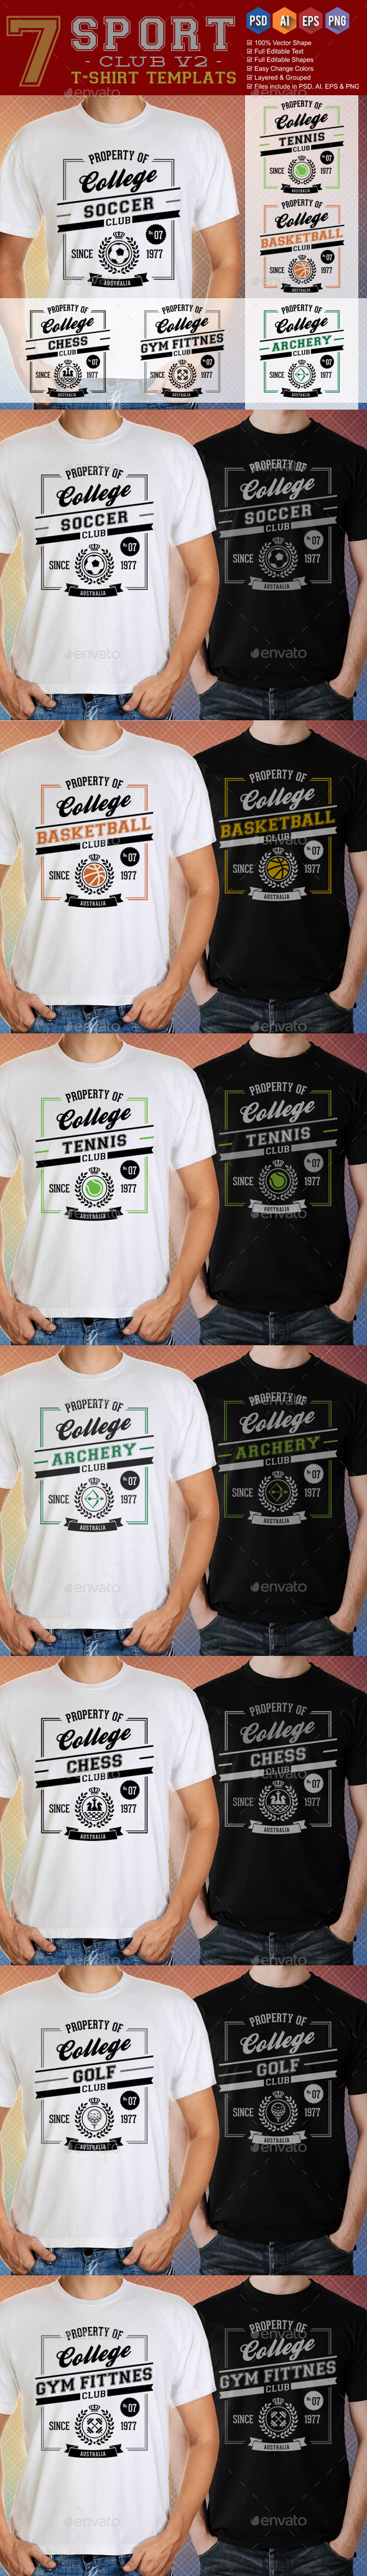 GraphicRiver Sports Club T-Shirt Template v2 9225662